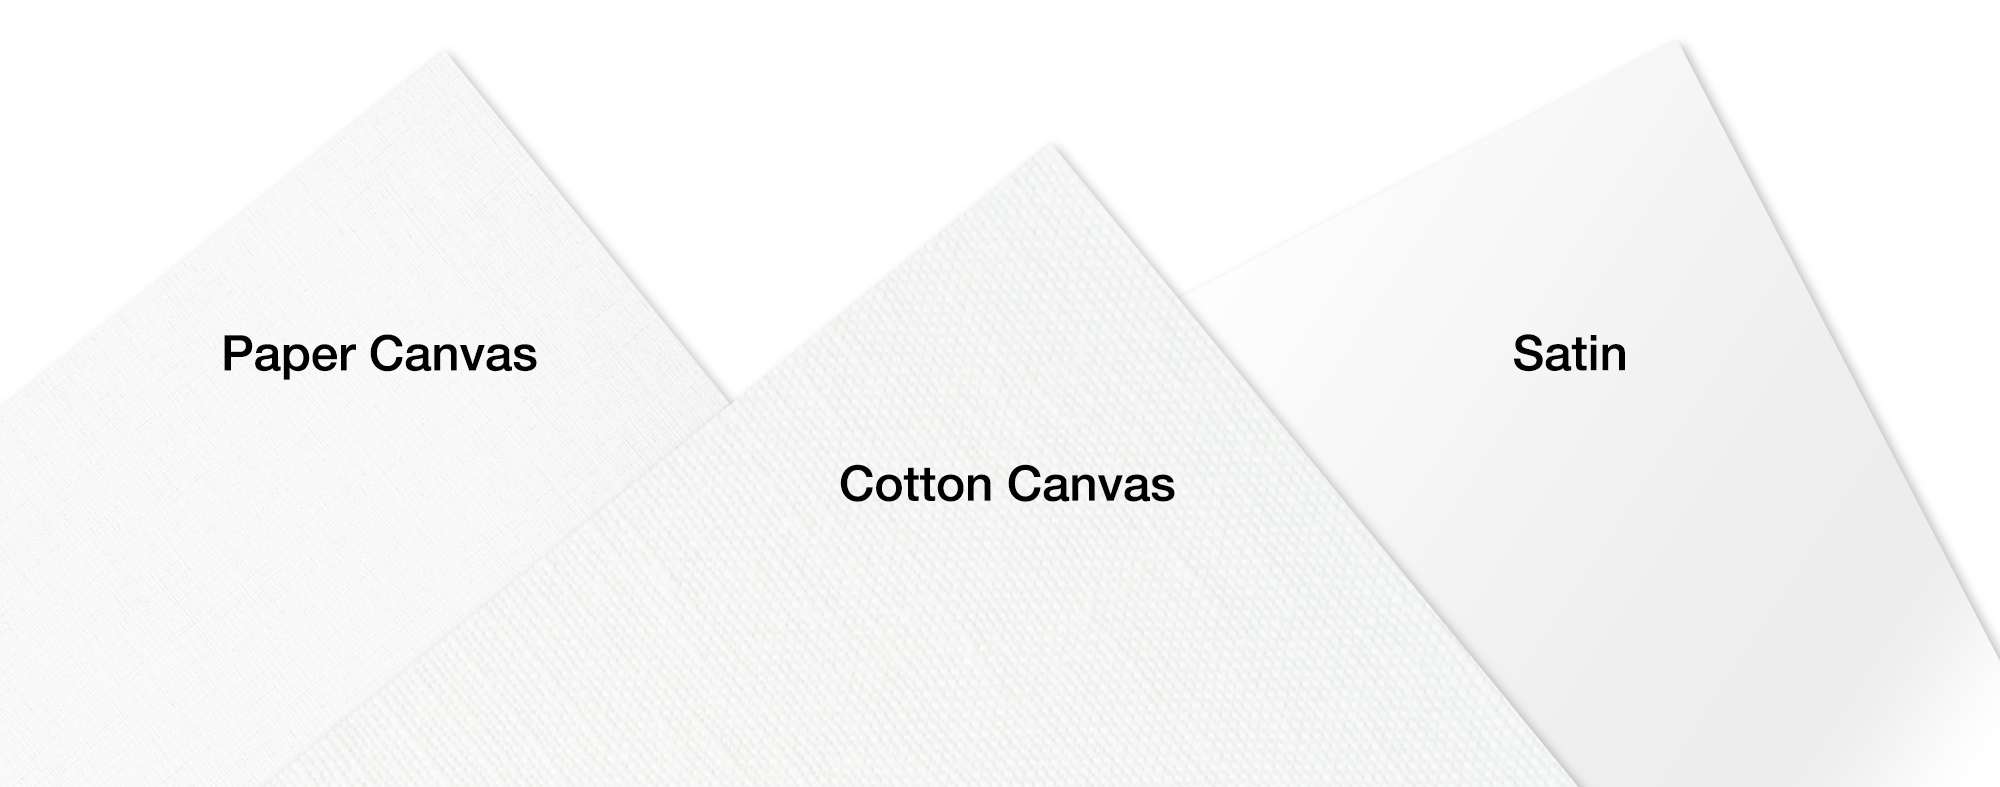 Flat Prints Media Options - Paper Canvas, Cotton Canvas, Satin